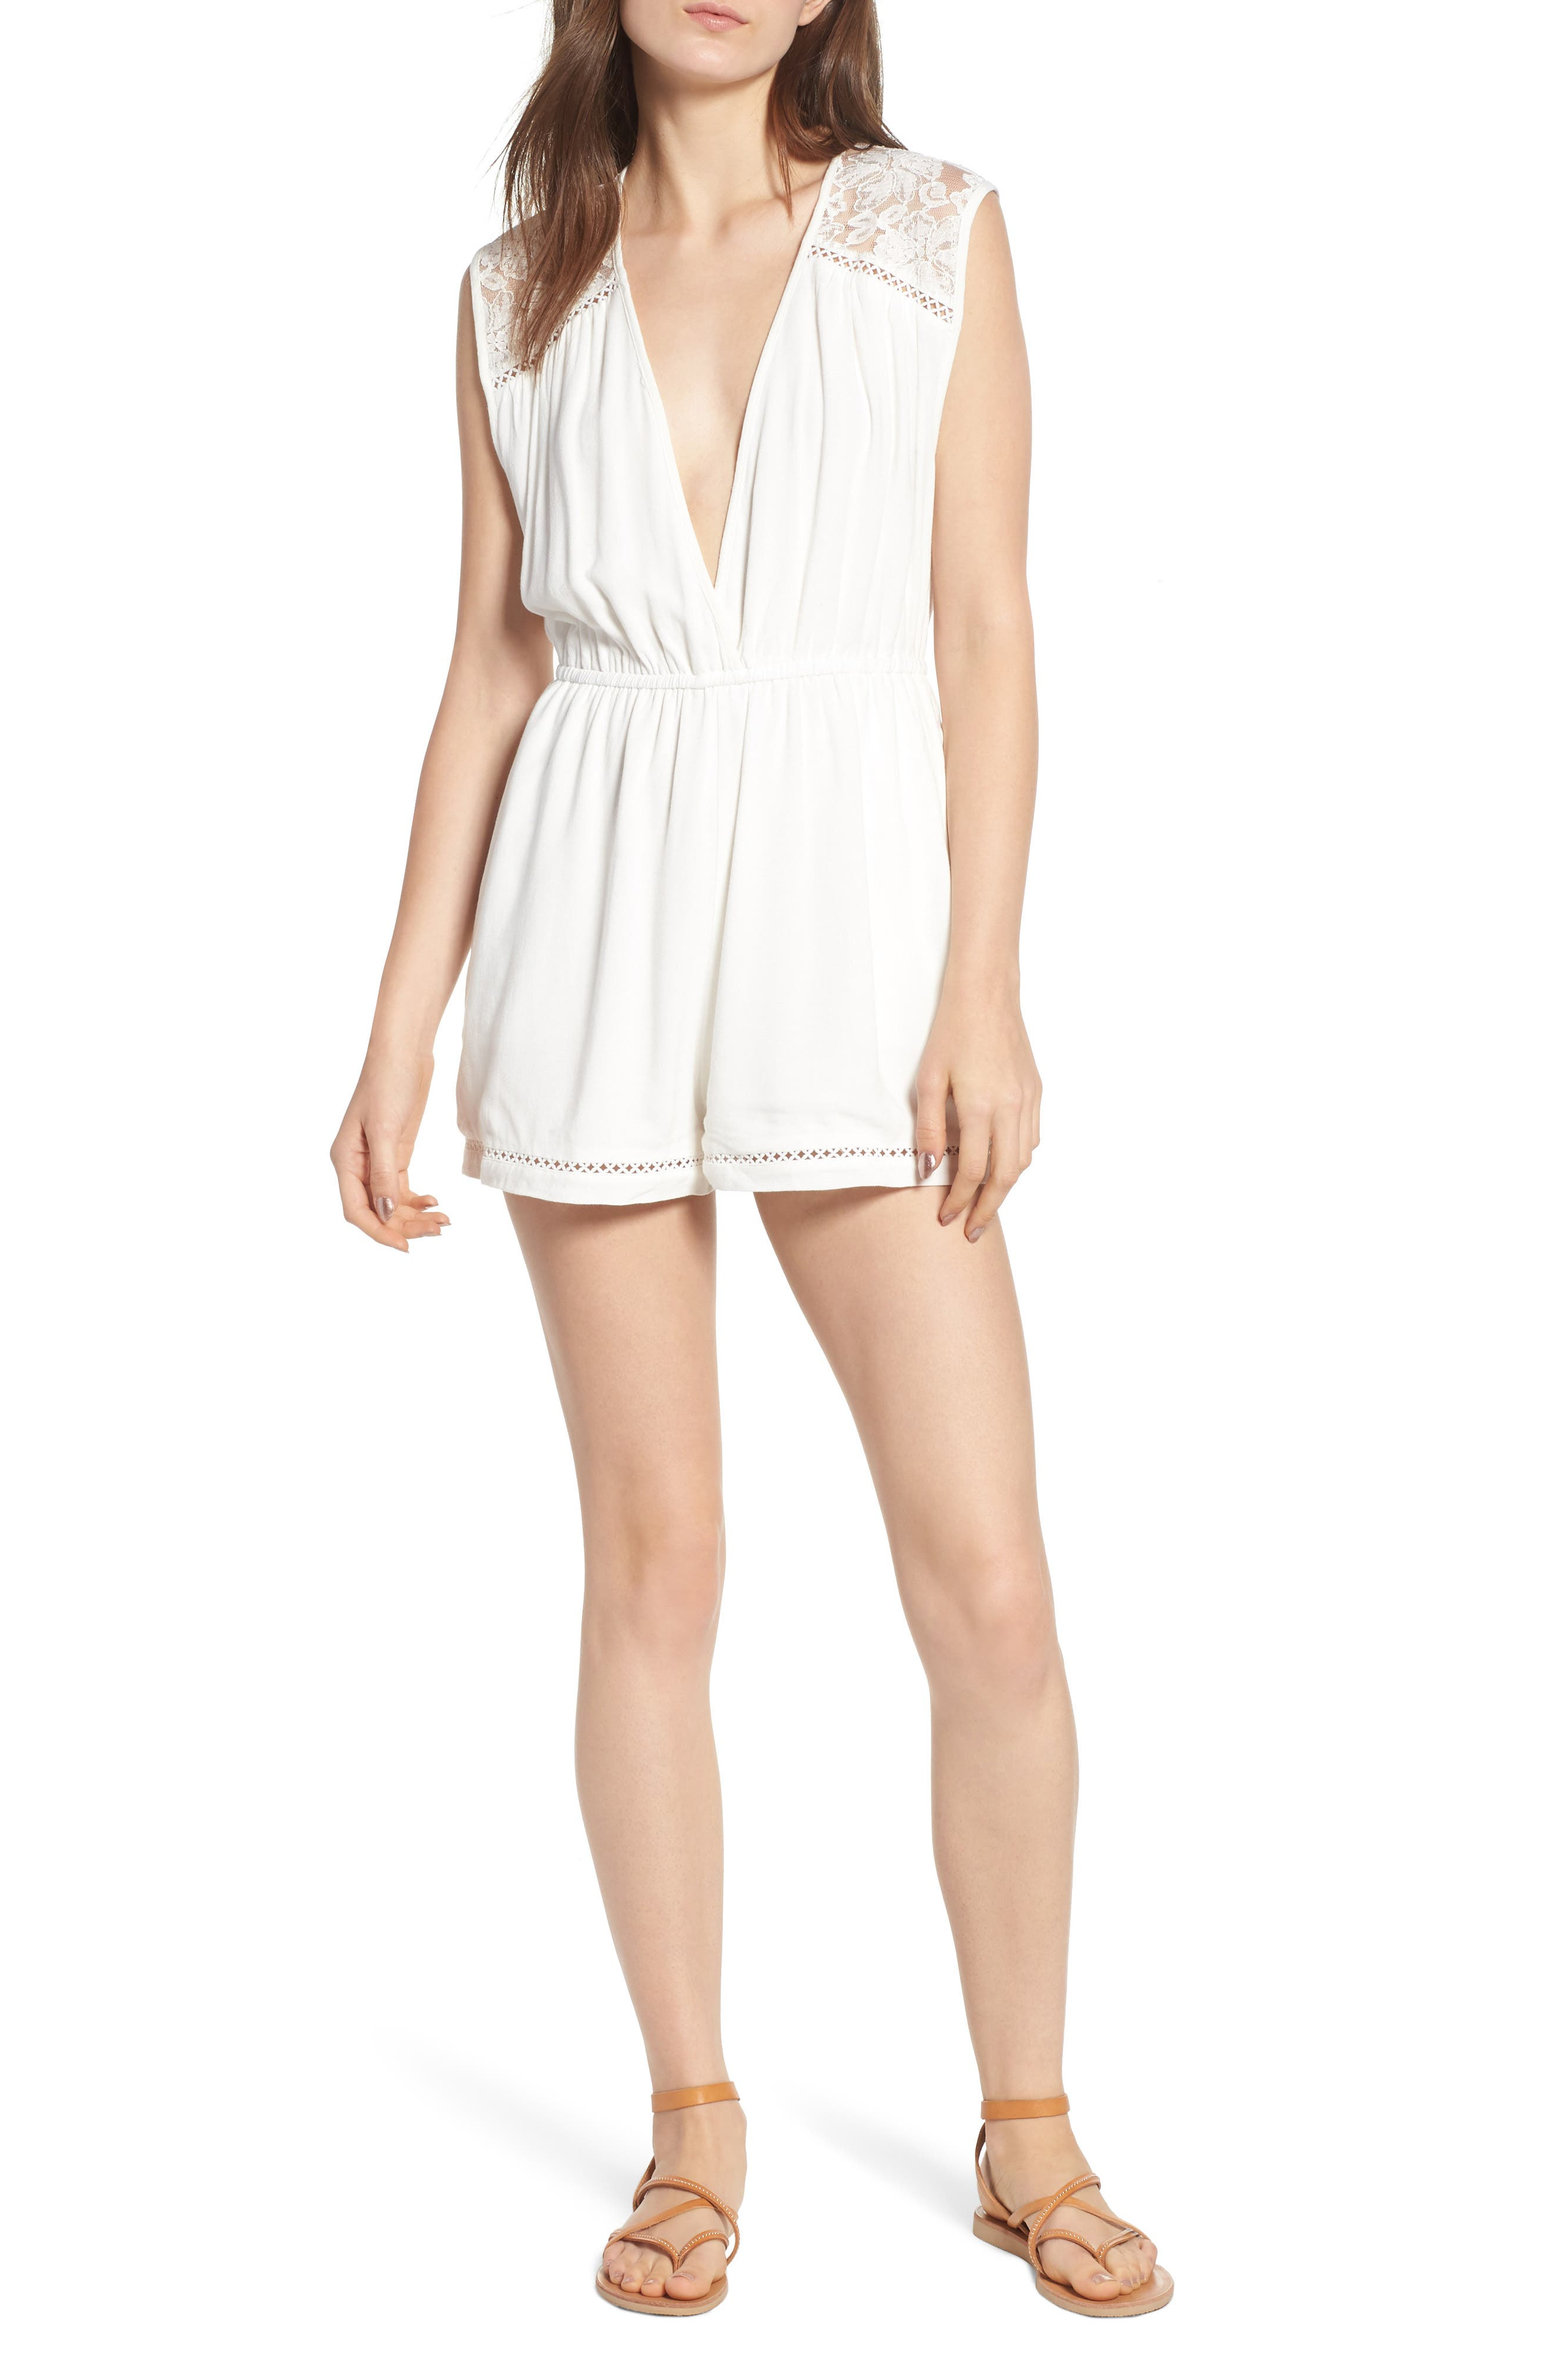 Oceans Away Lace Panel Romper,                             Main thumbnail 1, color,                             White